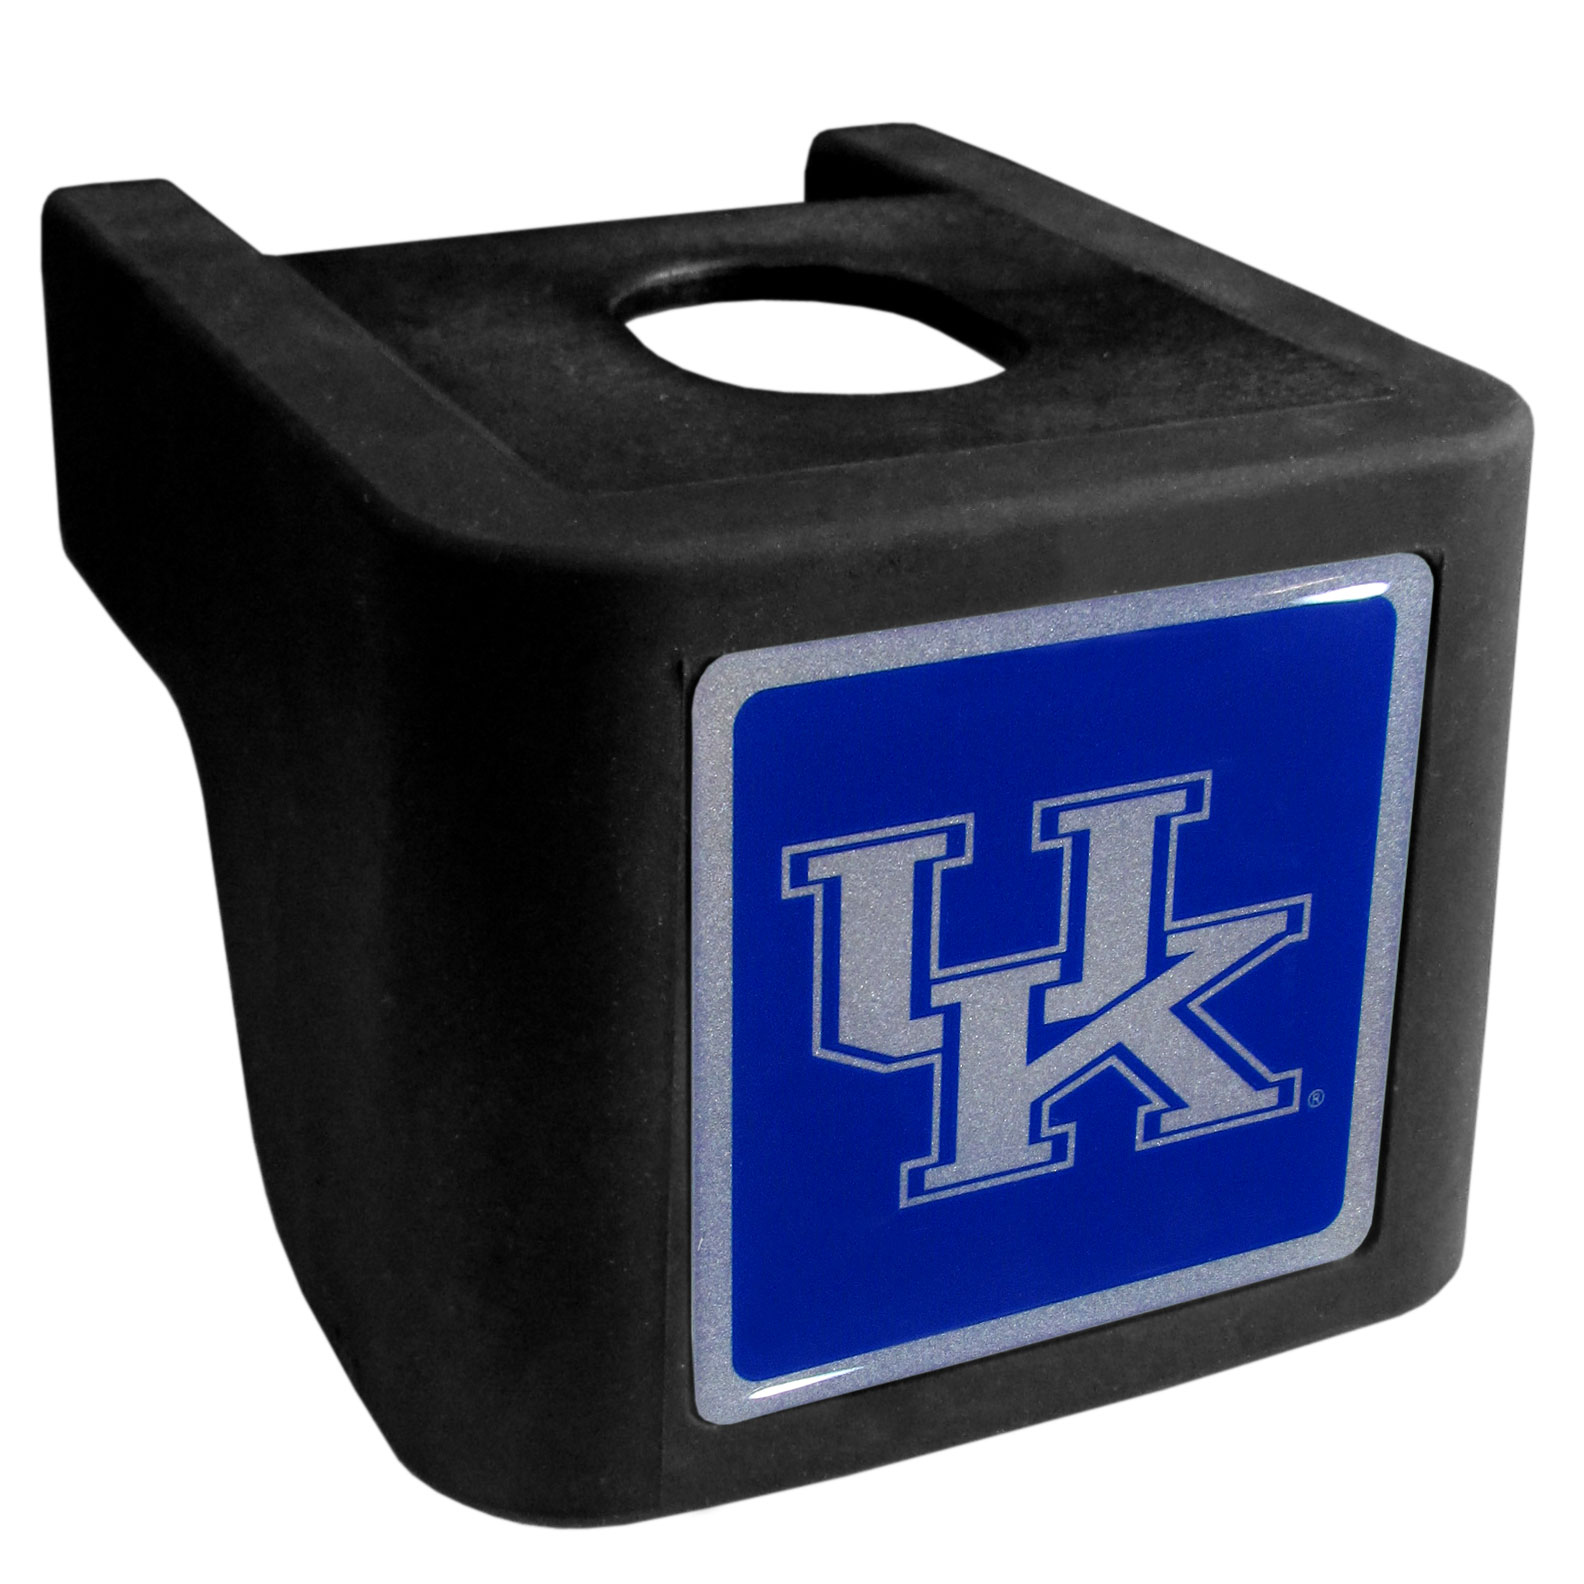 Kentucky Wildcats Shin Shield Hitch Cover - This unique hitch cover features a large Kentucky Wildcats logo. If you have ever hooked up a trailer or boat your have probably smashed your shins on the ball hitch a few times. This revolutionary shin shield hitch cover provides your much abused shins with the protection they deserve! The tough rubber hitch is rated to work with Class V hitch receivers hauling up to 17,000 gross trailer weight and 1,700 tongue weight allowing you to leave it on while hauling.